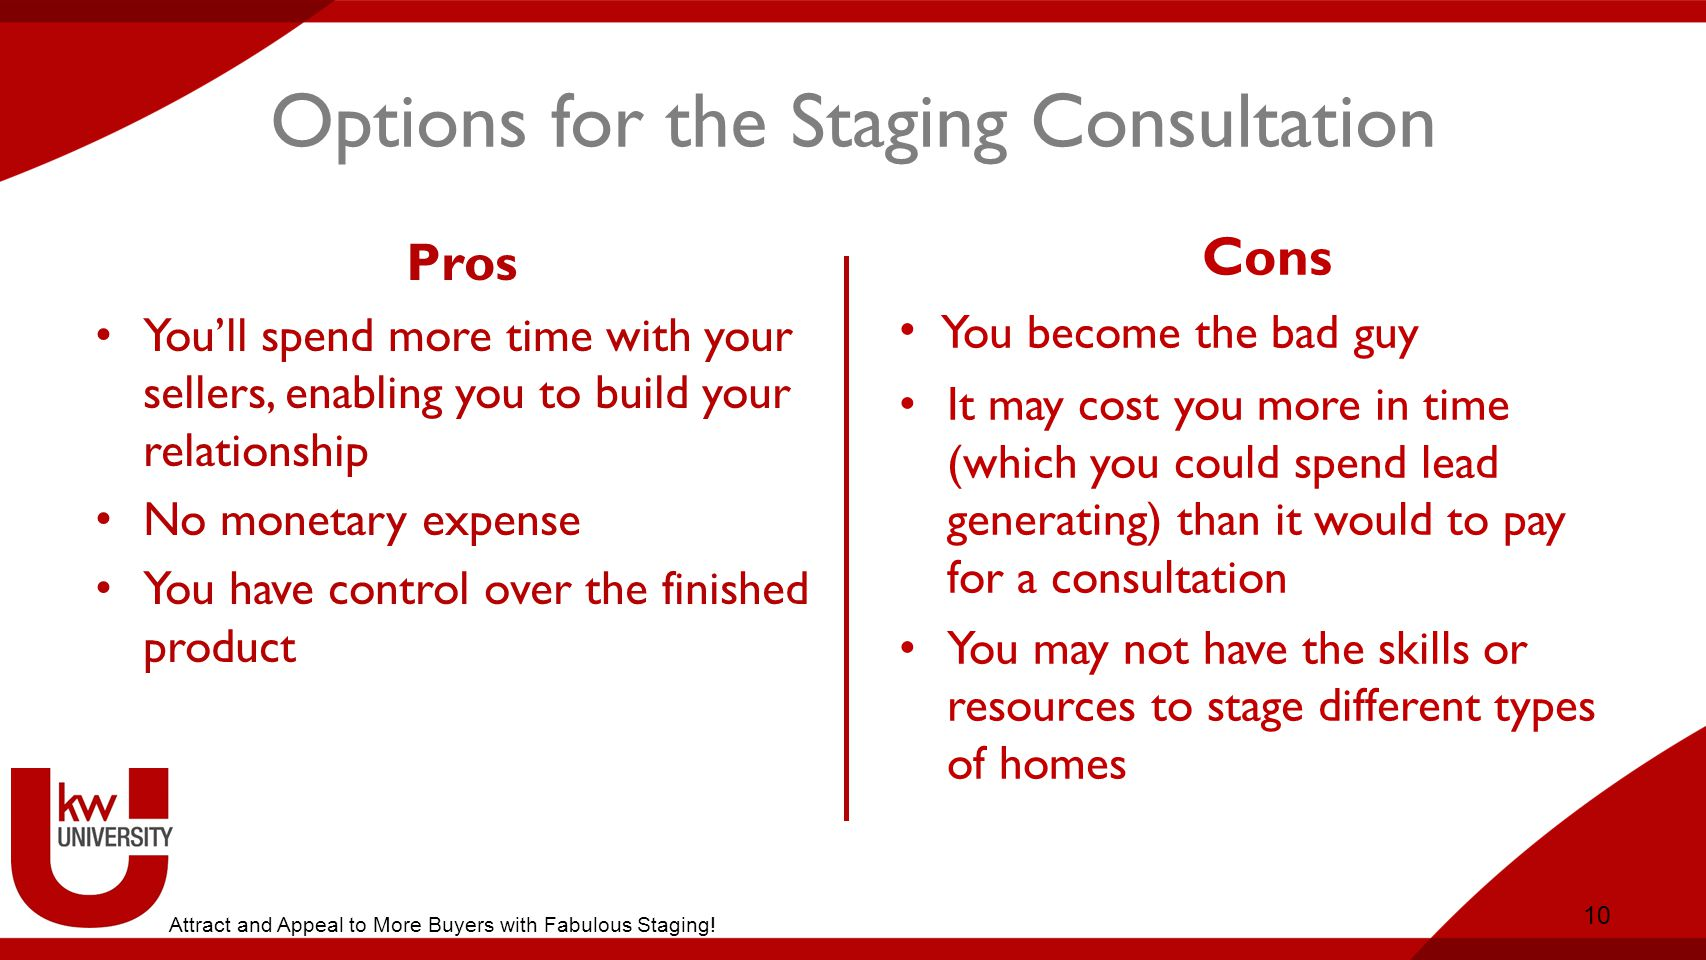 Options for the Staging Consultation Pros You'll spend more time with your sellers, enabling you to build your relationship No monetary expense You have control over the finished product 10 Cons You become the bad guy It may cost you more in time (which you could spend lead generating) than it would to pay for a consultation You may not have the skills or resources to stage different types of homes Option 1: Do It Yourself Attract and Appeal to More Buyers with Fabulous Staging!